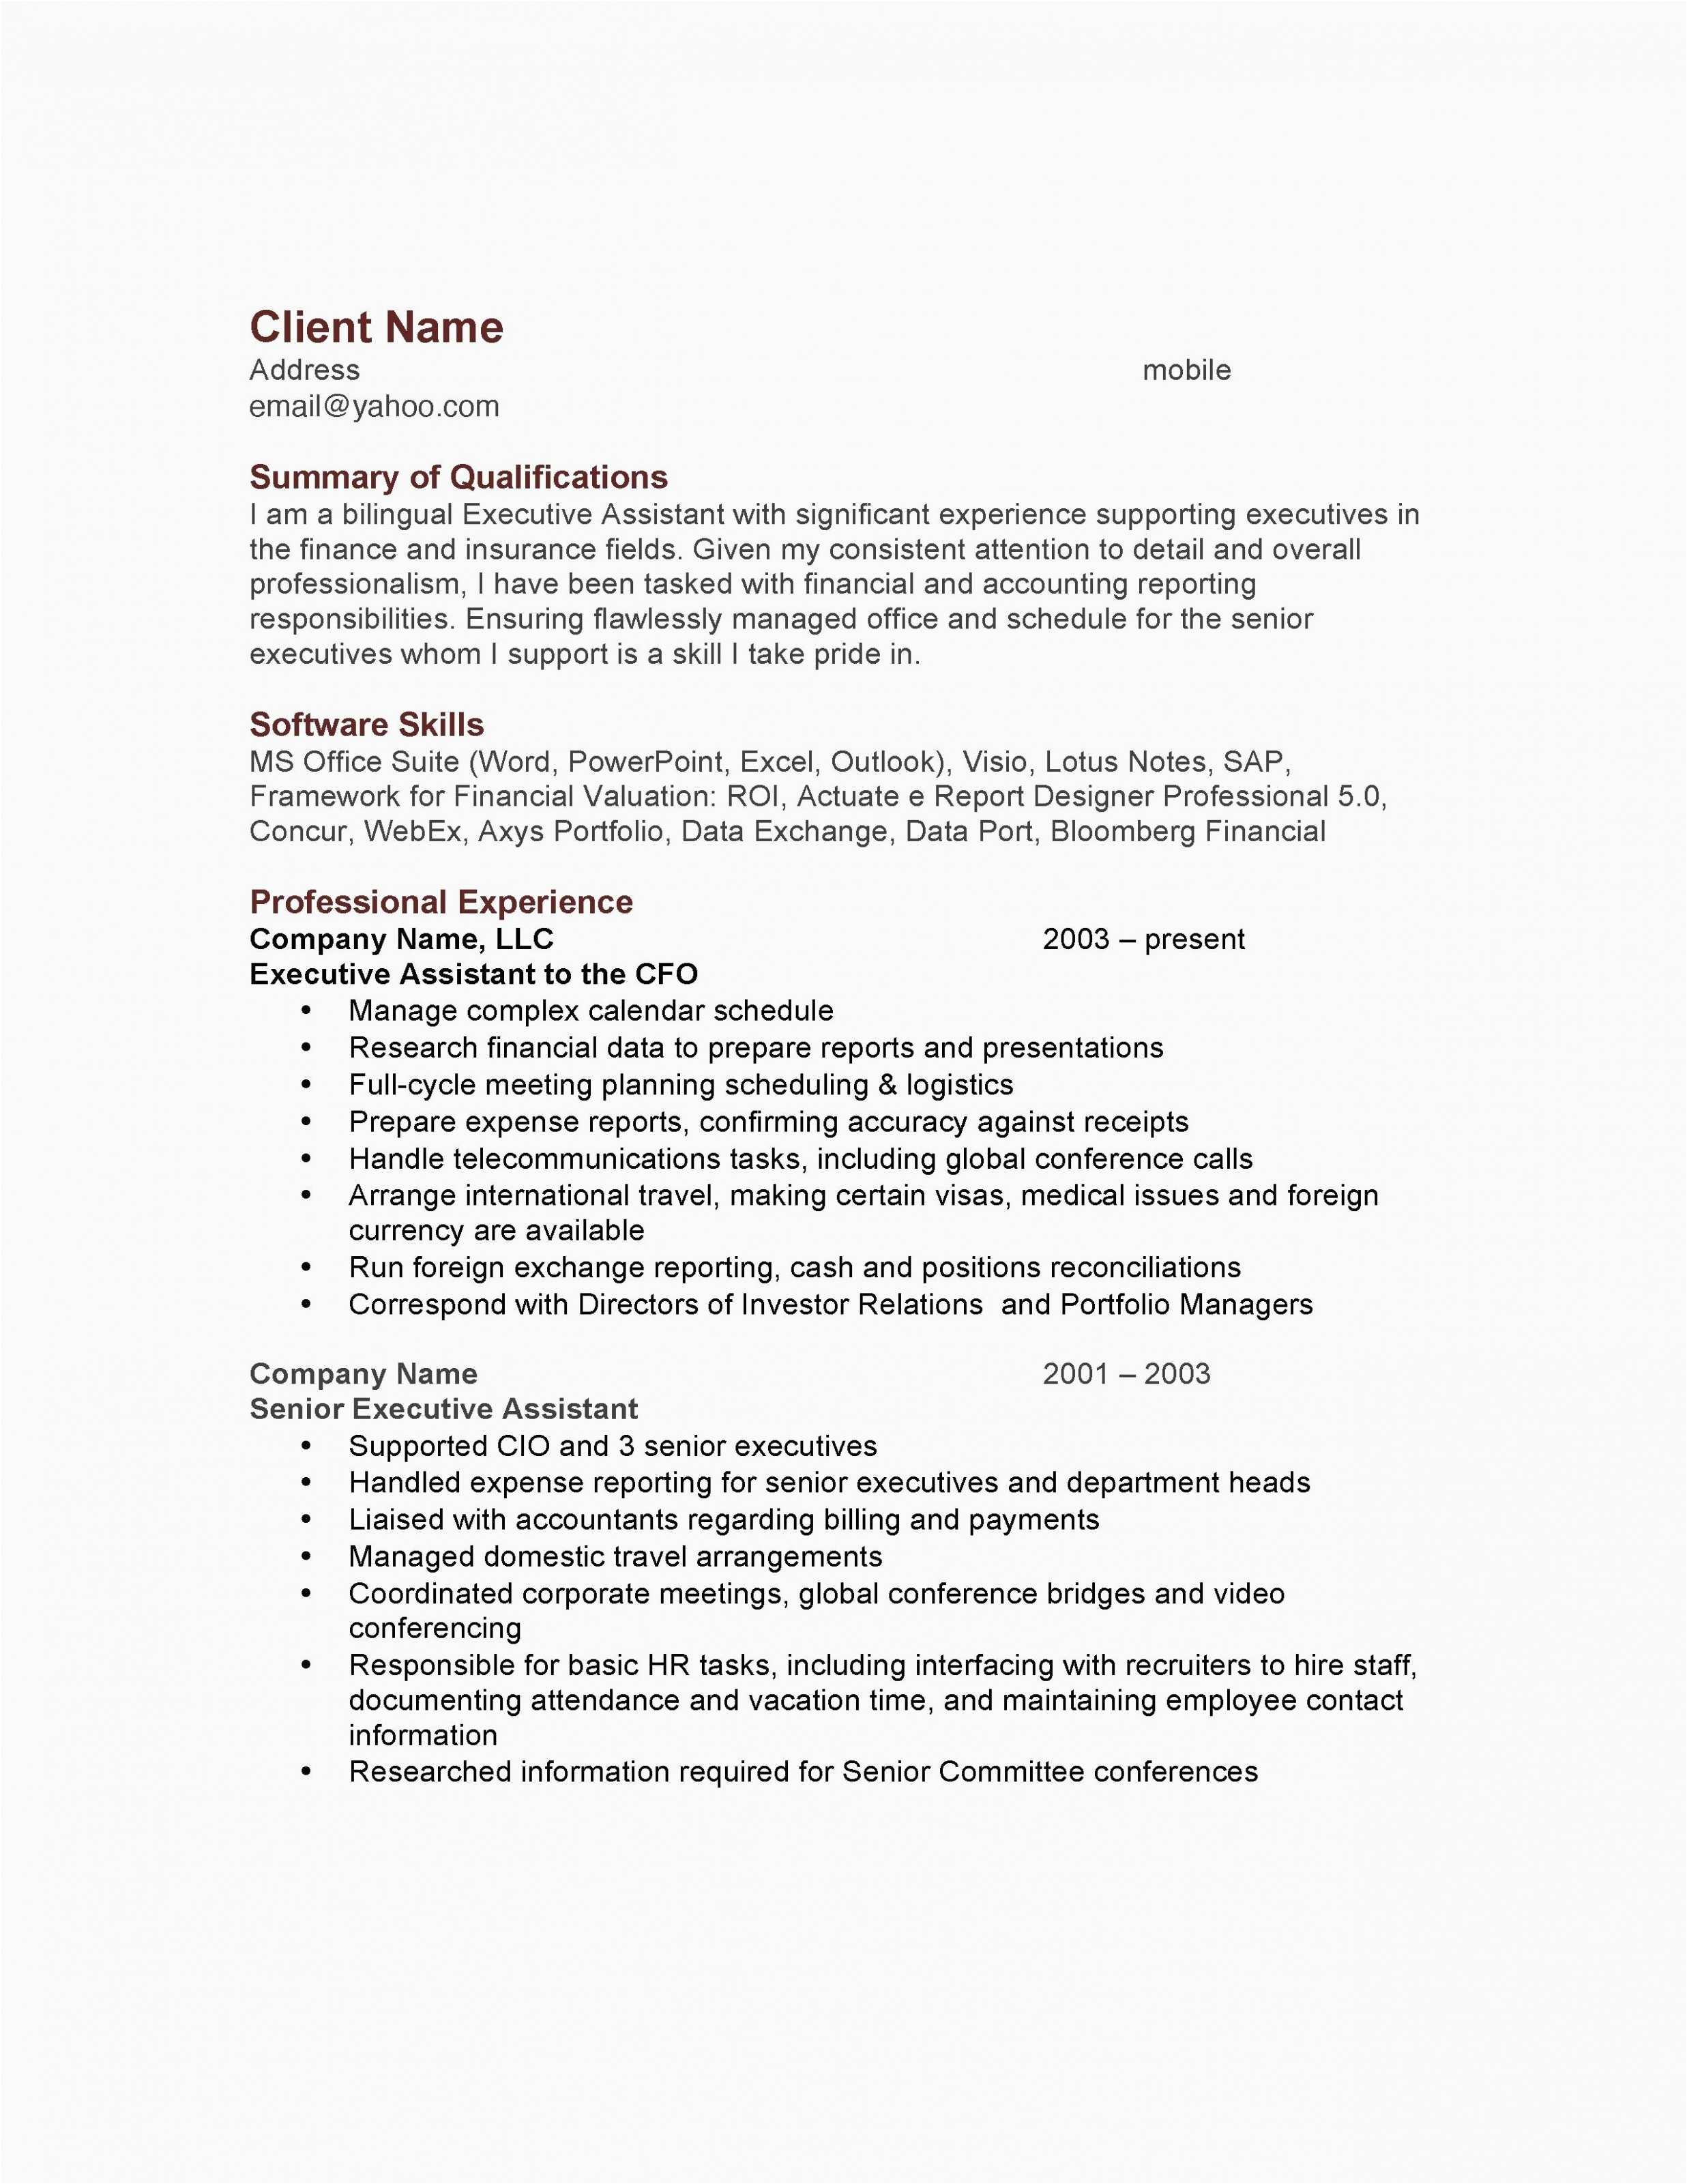 Hr Recruiter Resume - Recruiter Resume Examples Examples Professional Resume Sample